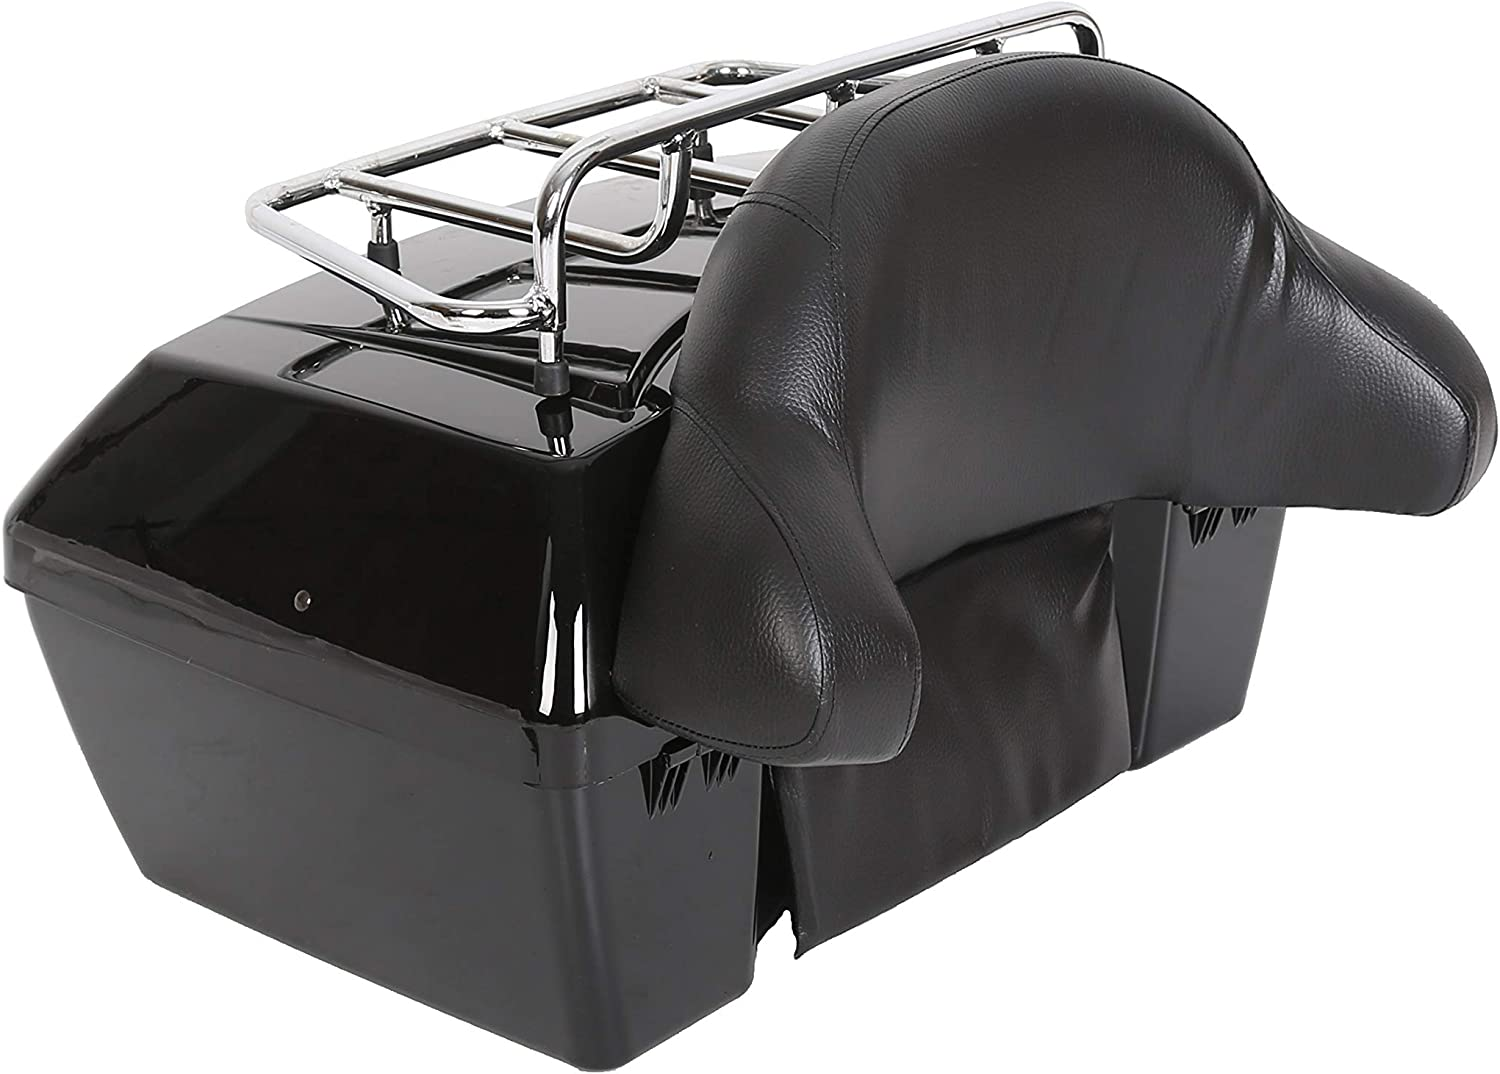 Motorcycle Trunk Tour Pack Tail Box Luggage for Harley Honda Yamaha Suzuki Cruiser with Top Rack and Backrest Classic Black